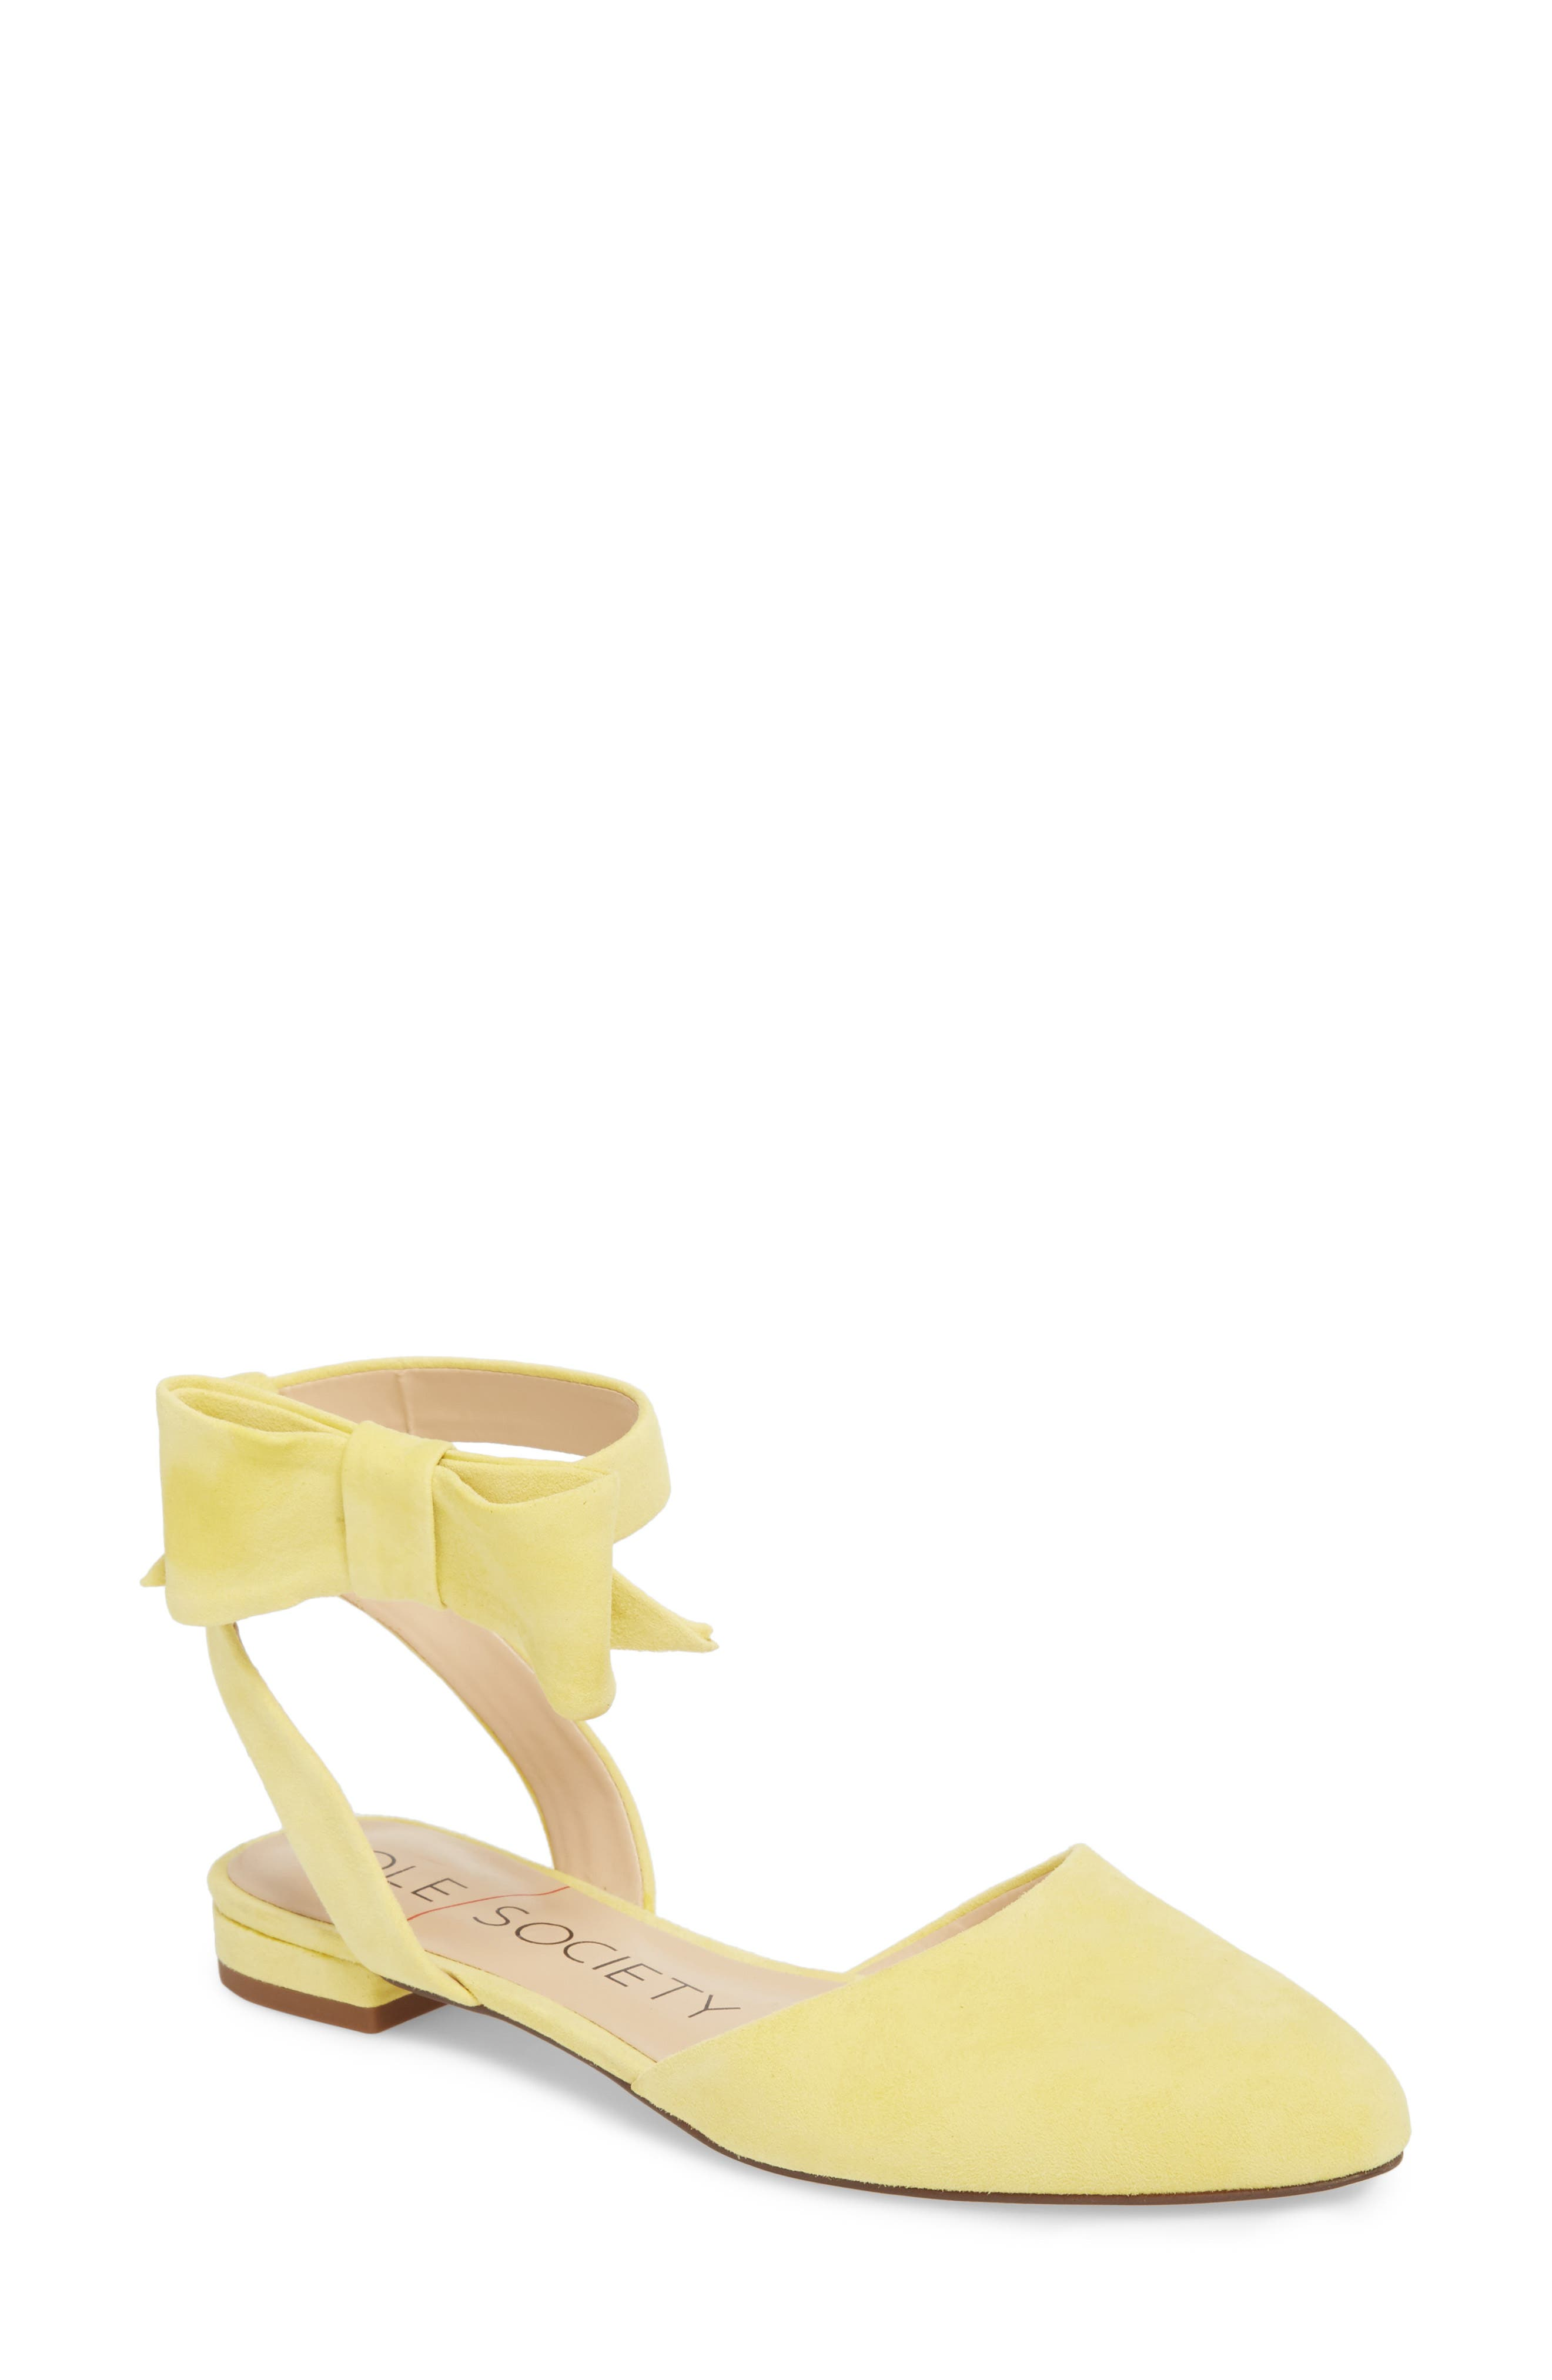 Pollie Flat,                         Main,                         color, Pale Yellow Fabric